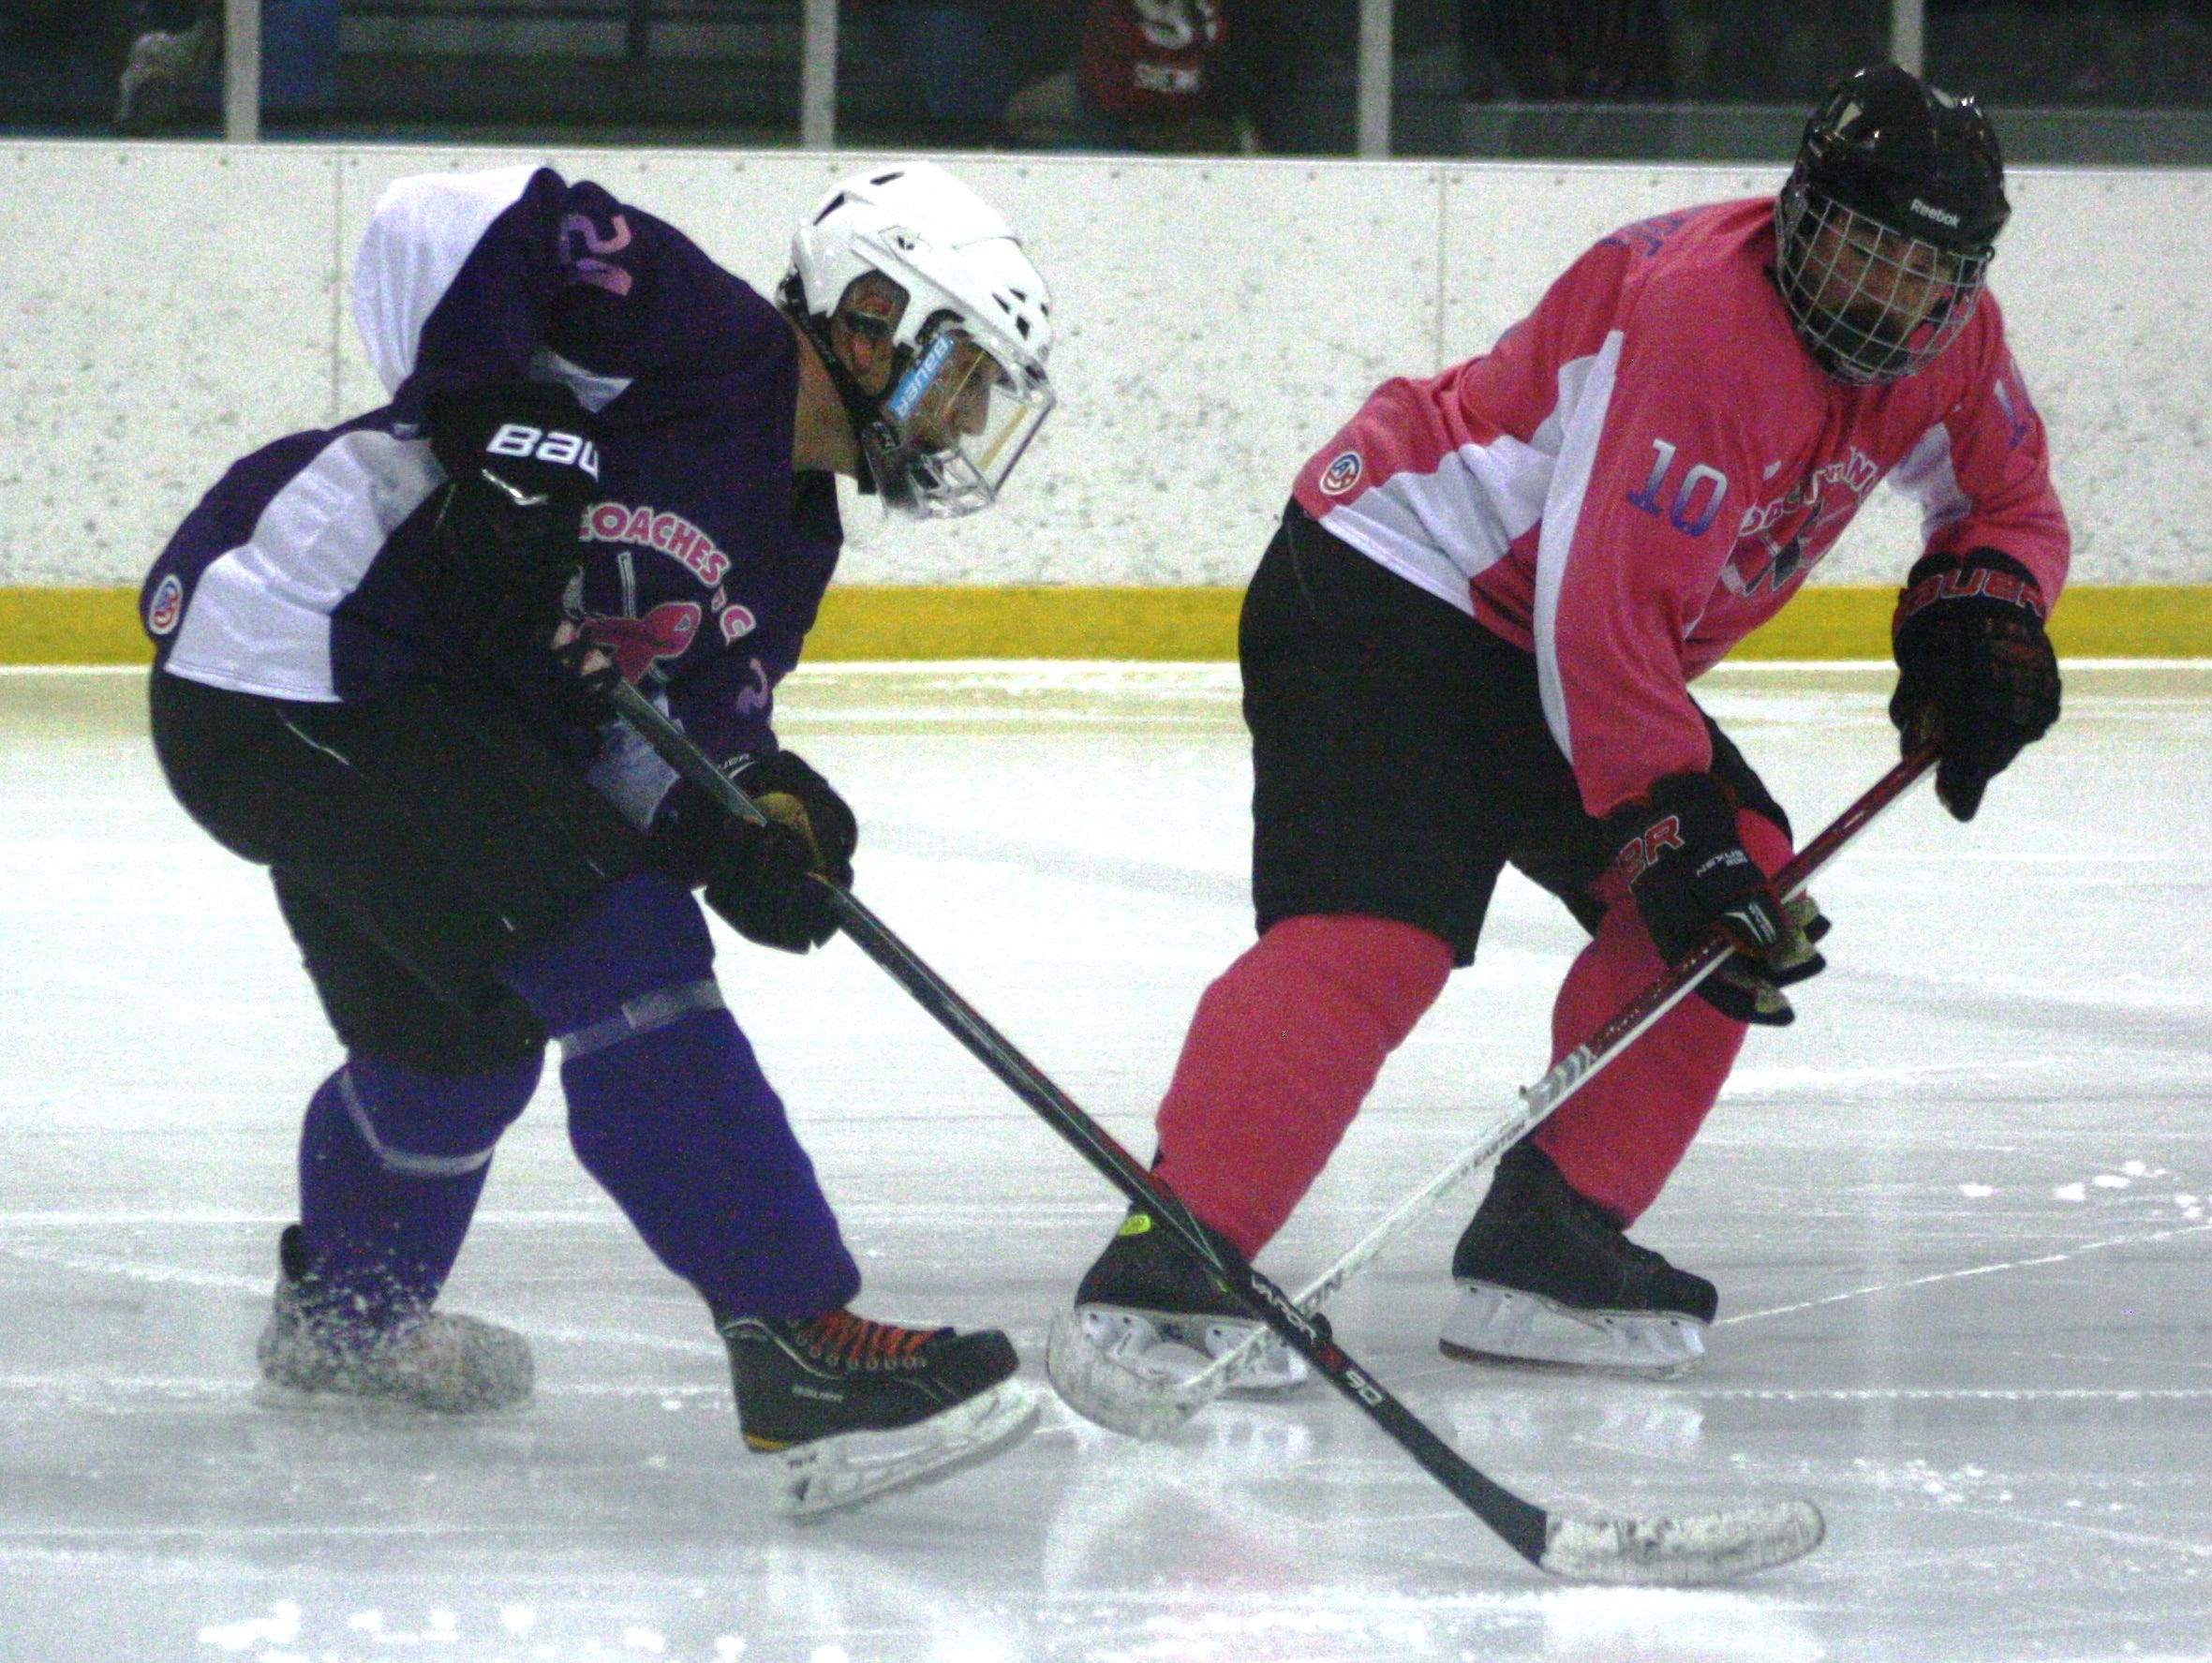 Wearing purple and pink jerseys, current and former Livonia Hockey Association coaches squared off in Saturday's Coaches vs. Cancer fund-raising game at Eddie Edgar Arena.